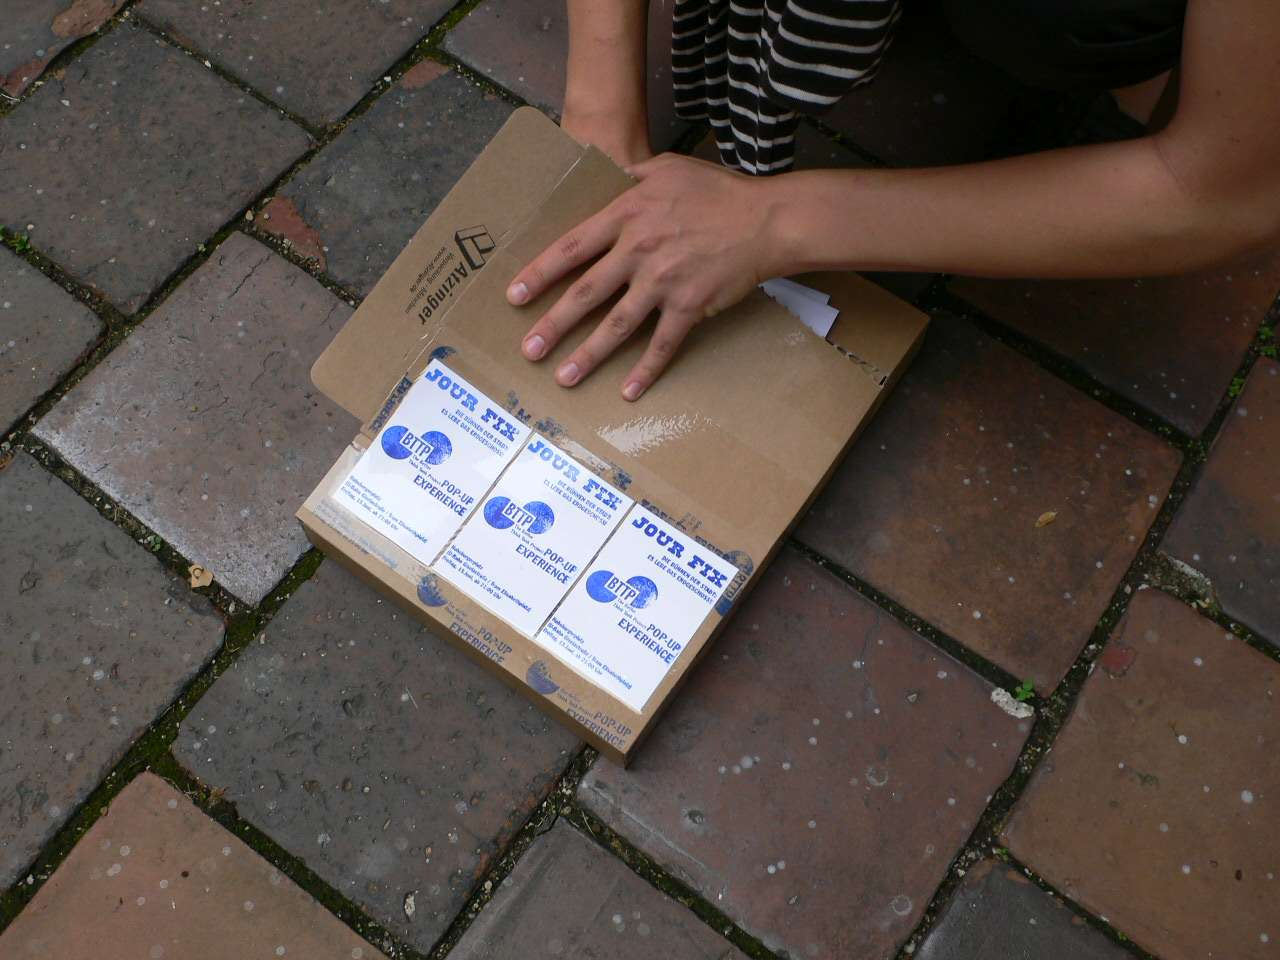 gluecksfee_frauke_zabel_jf2-box_001.jpg